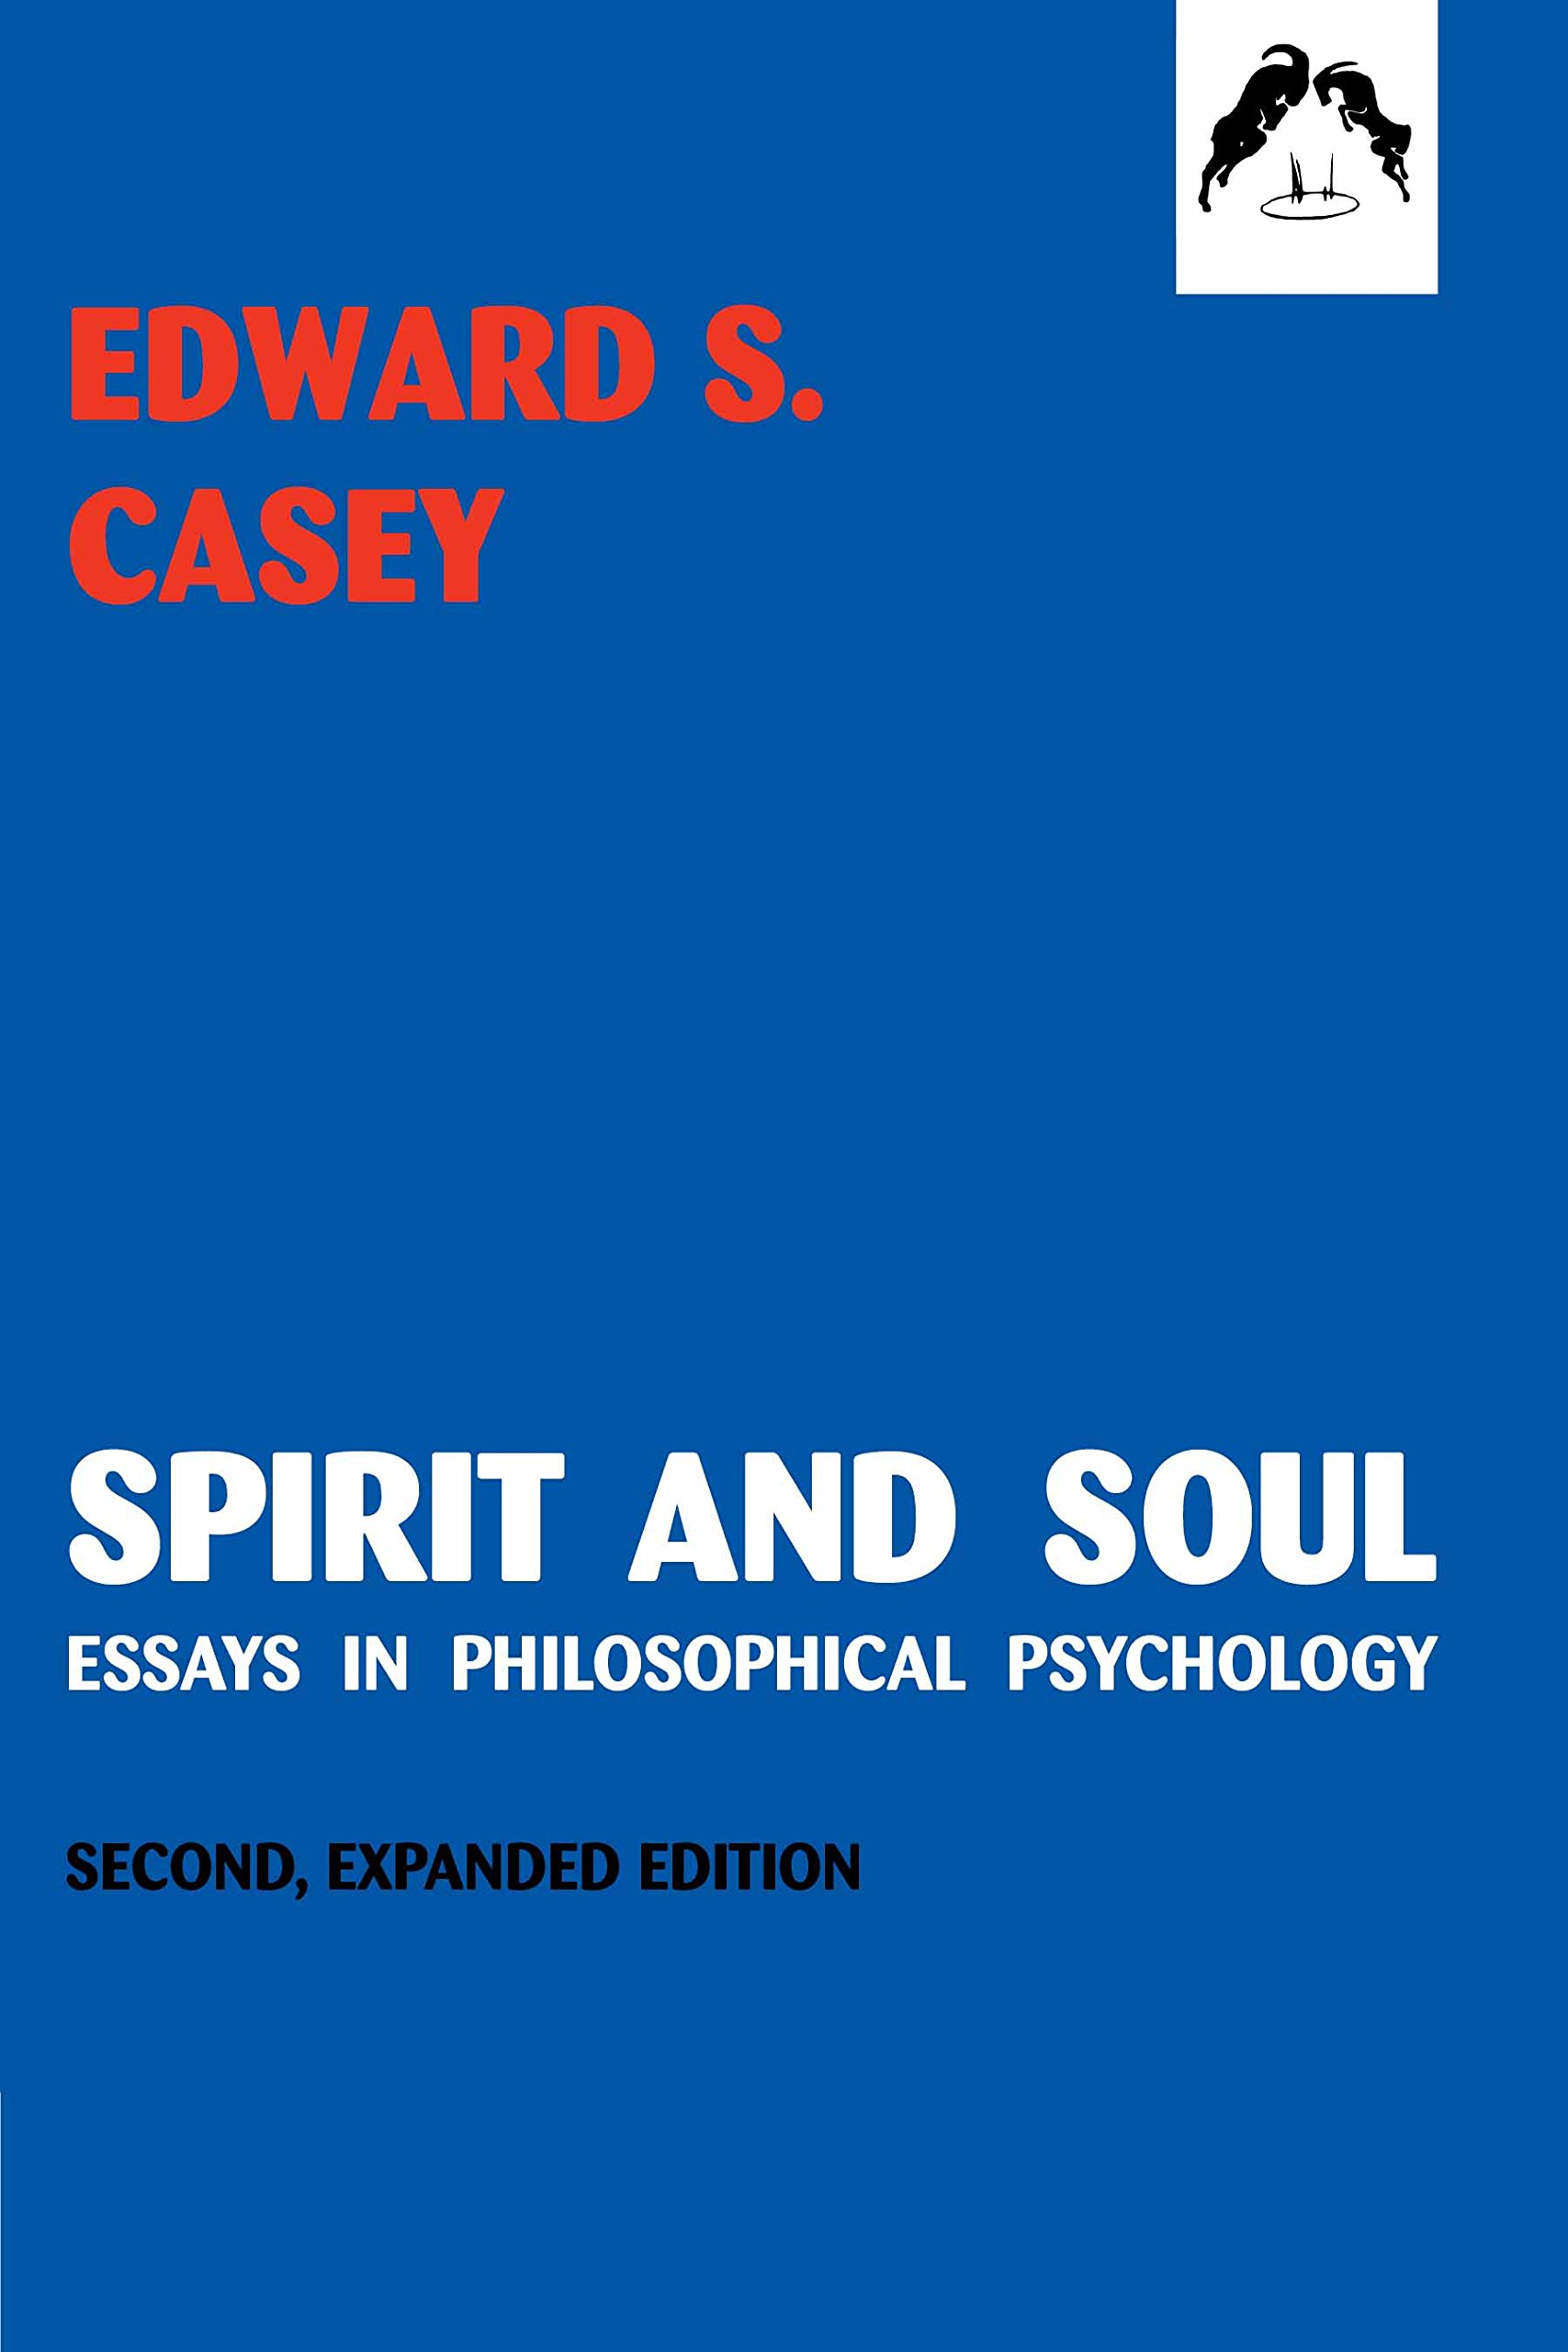 spirit and soul essays in philosophical psychology second spirit and soul essays in philosophical psychology second expanded edition edward s casey 9780882145501 com books